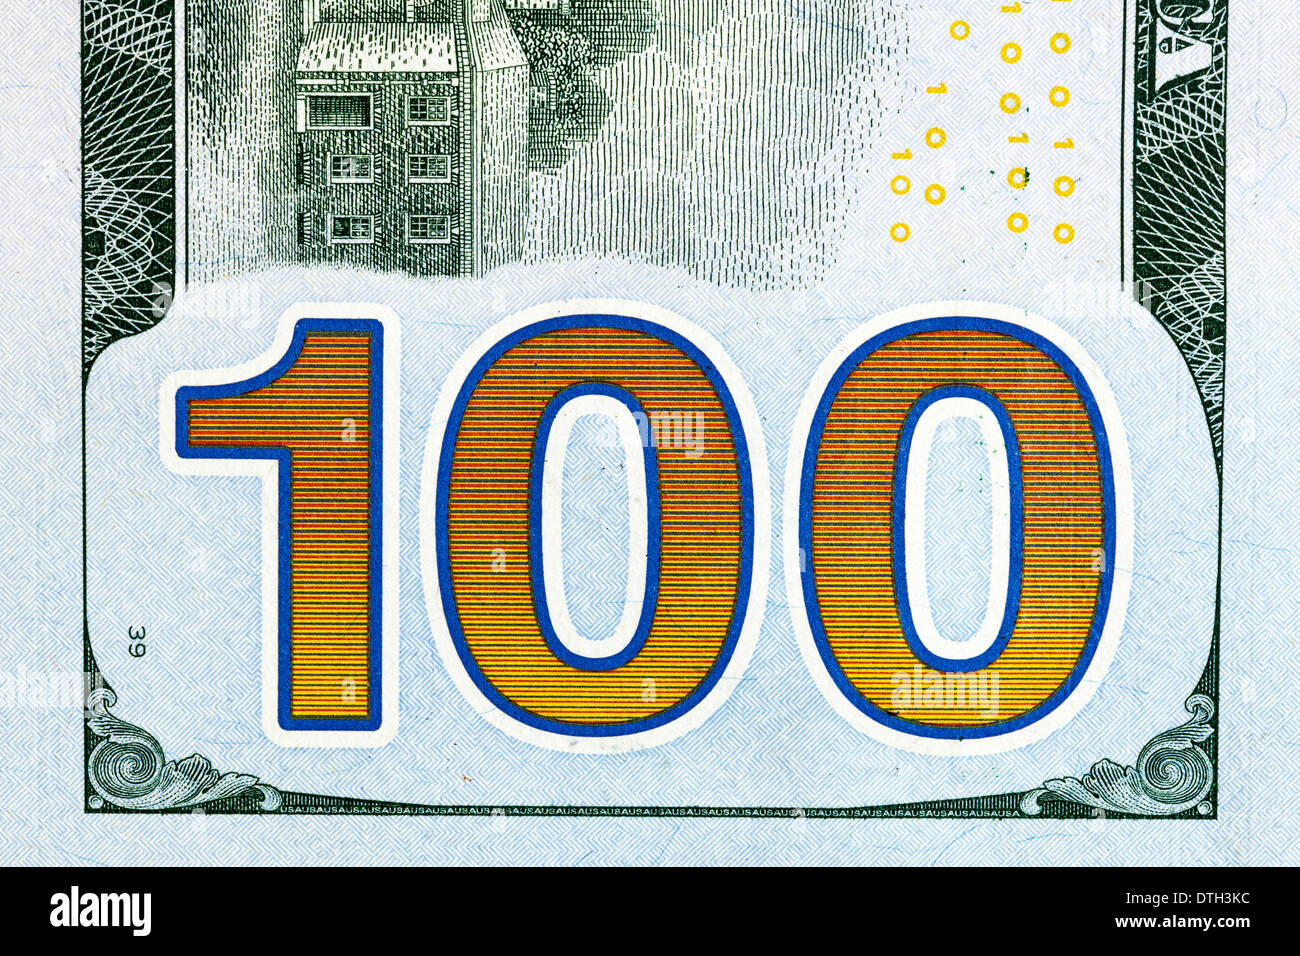 us 100 dollar bill - Stock Image